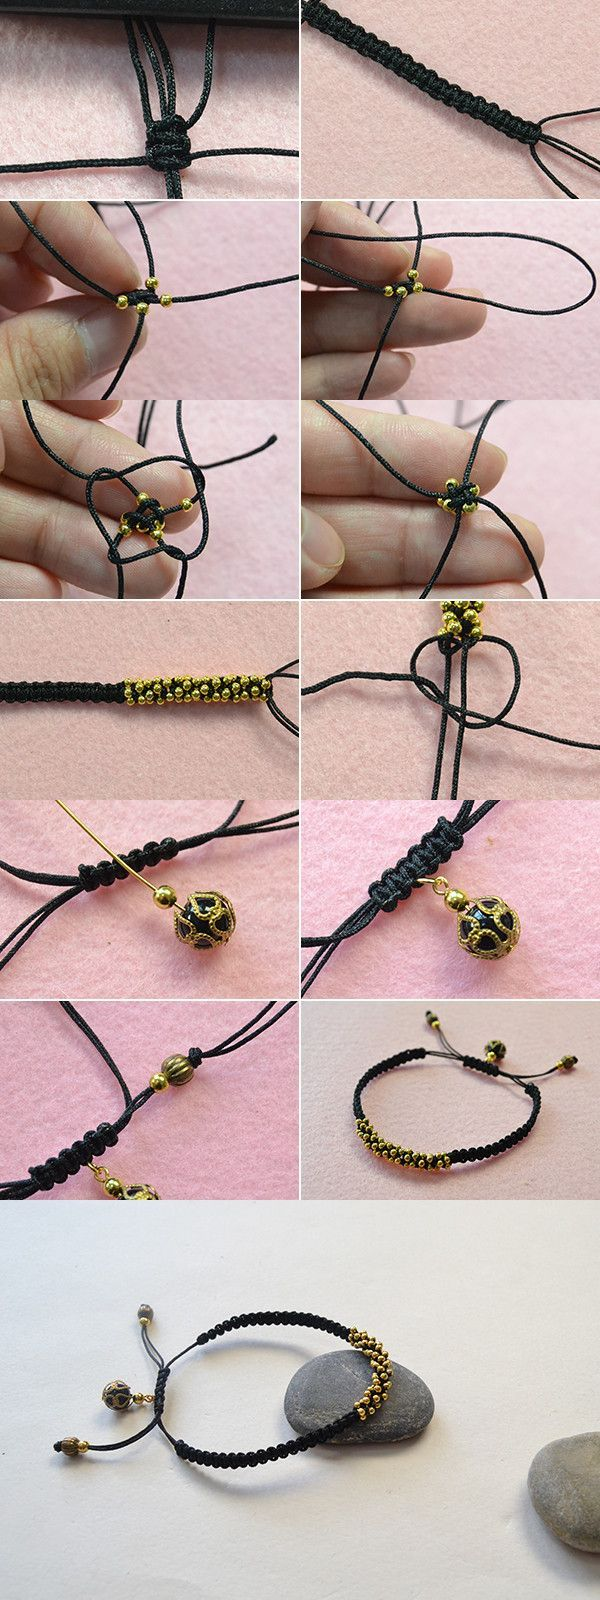 Best Bracelet 2017/ 2018 : Like this braided bracelet? LC.Pandahall.com will publish the tutorial soon. ...